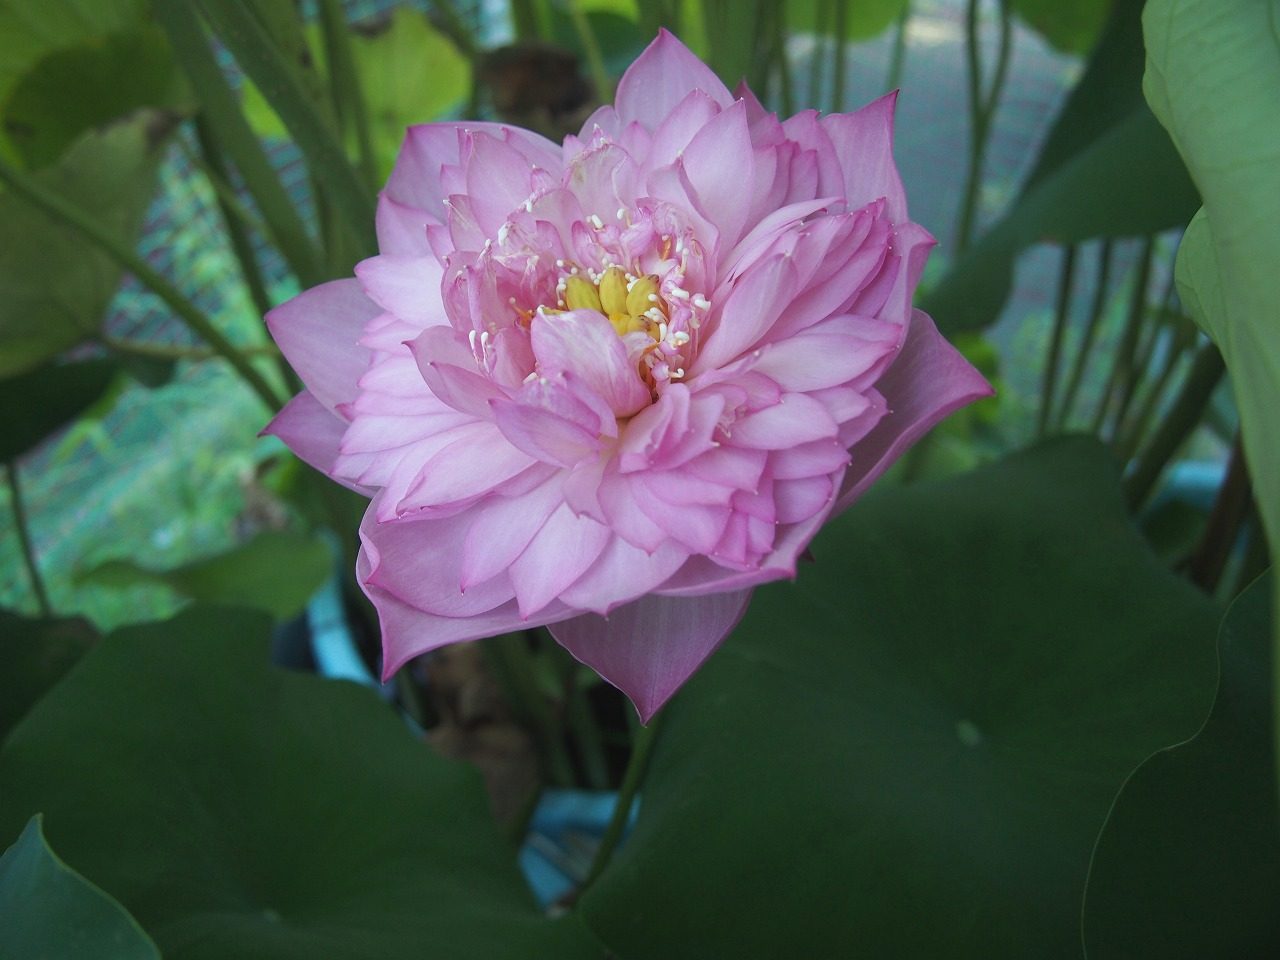 20160821-Lotus_Hishinko-O04.jpg